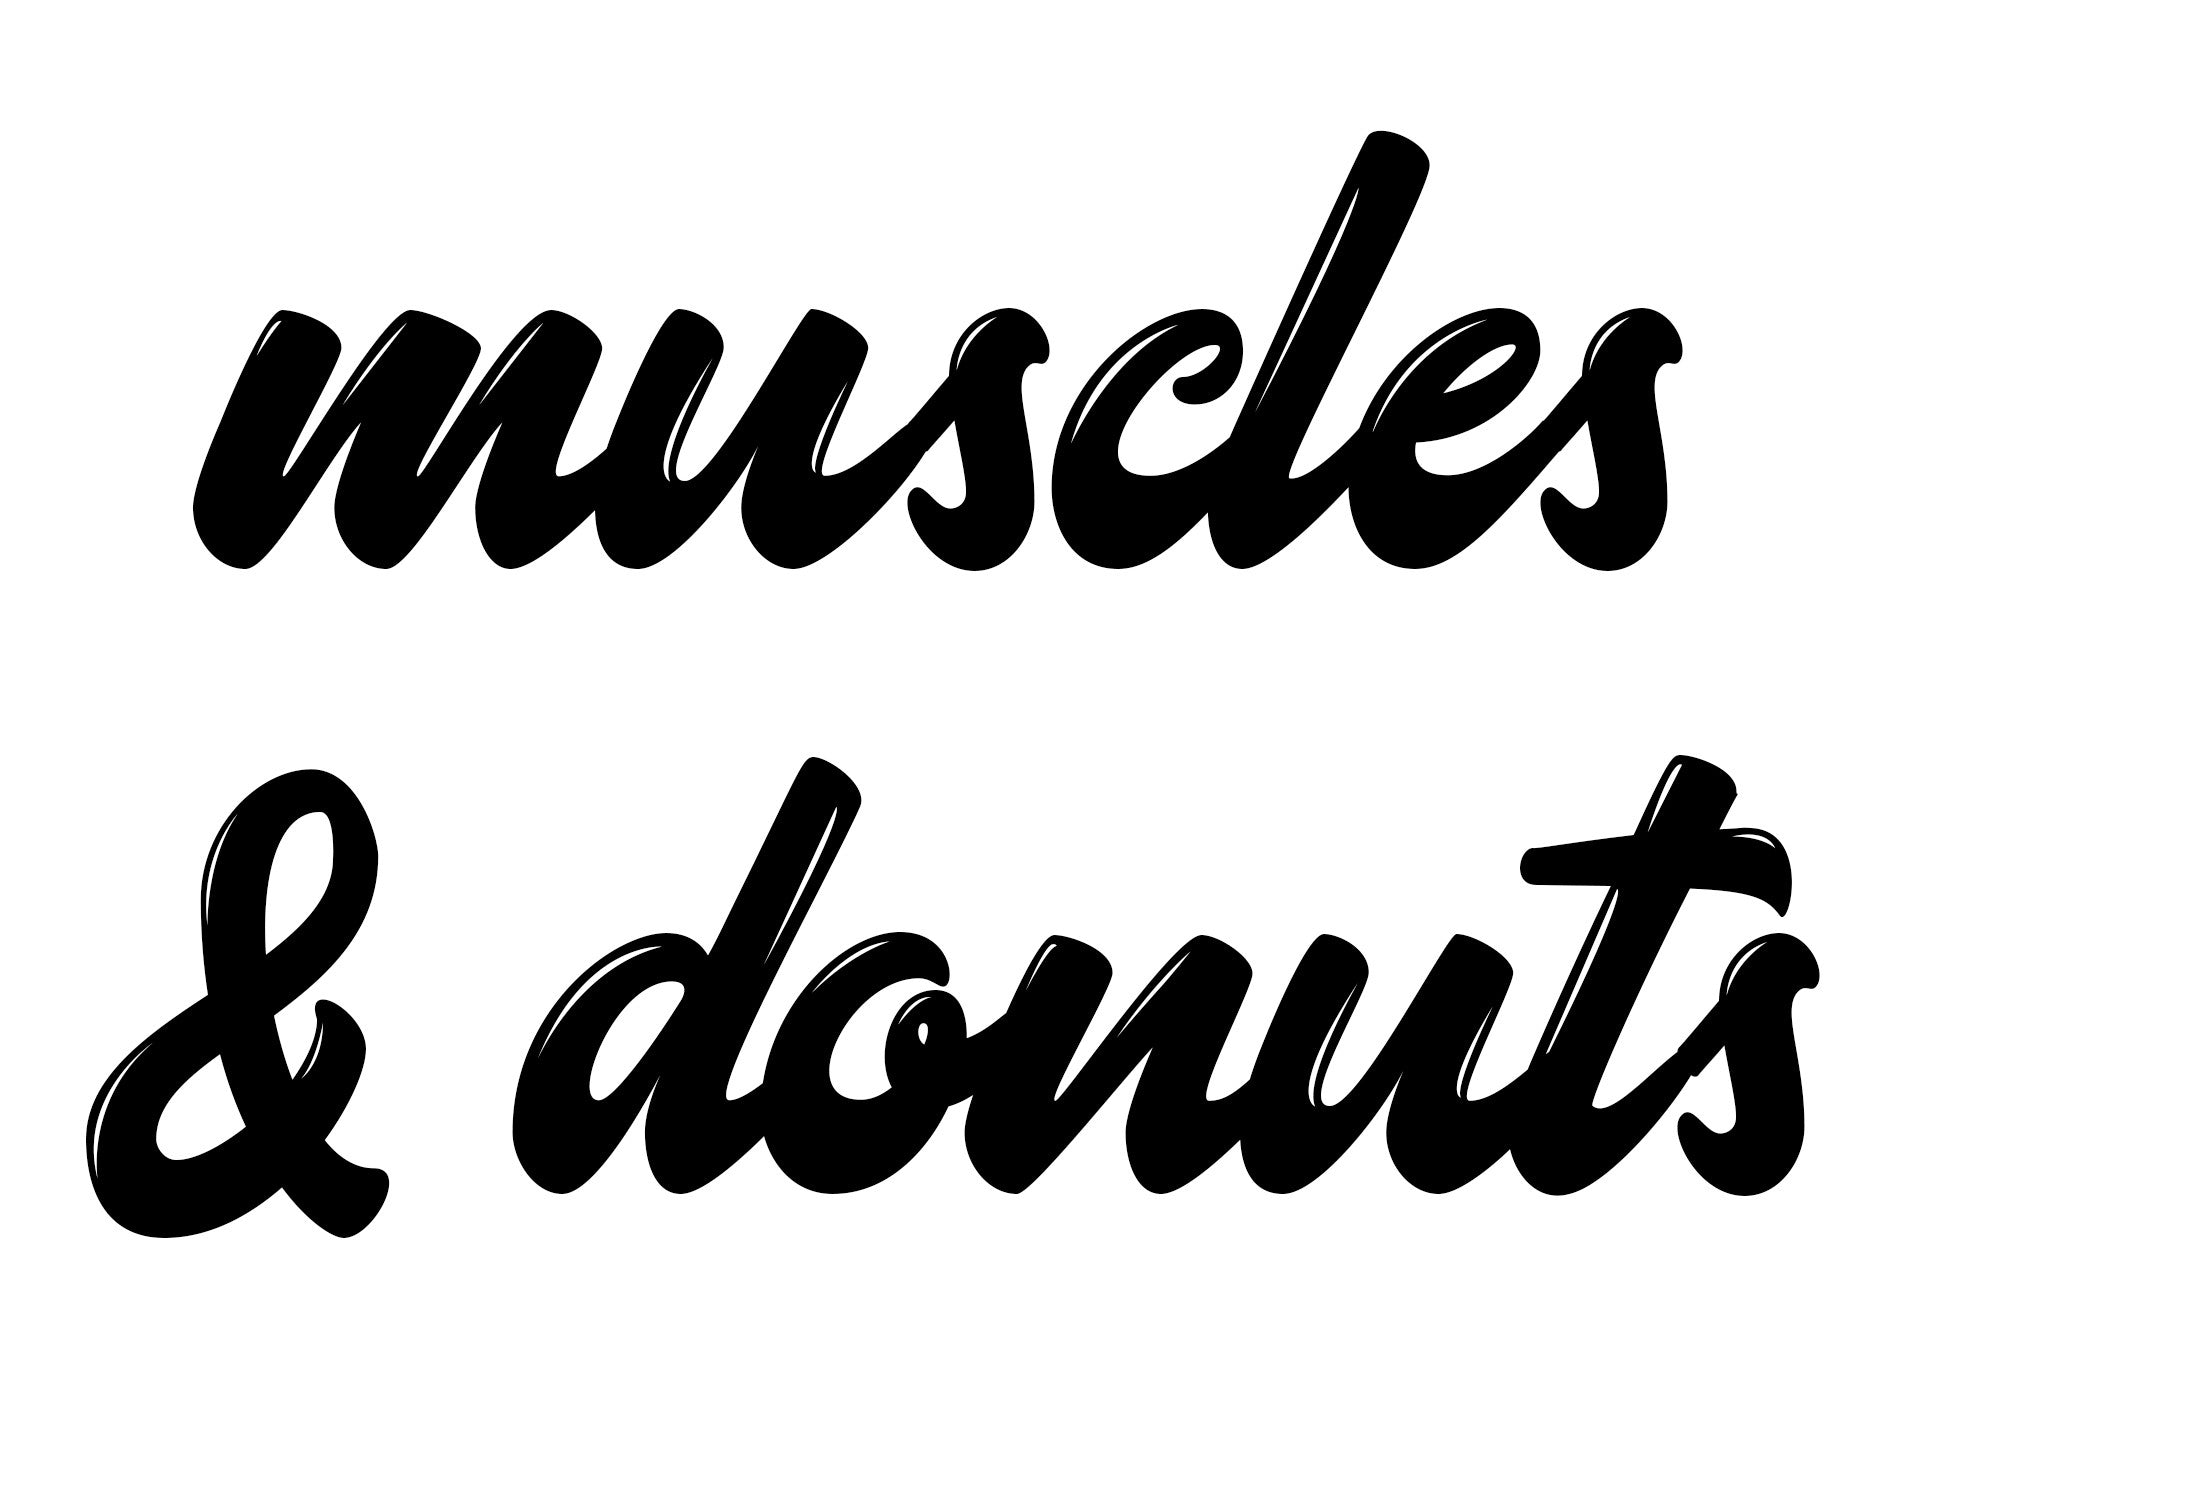 Muscles and Donuts